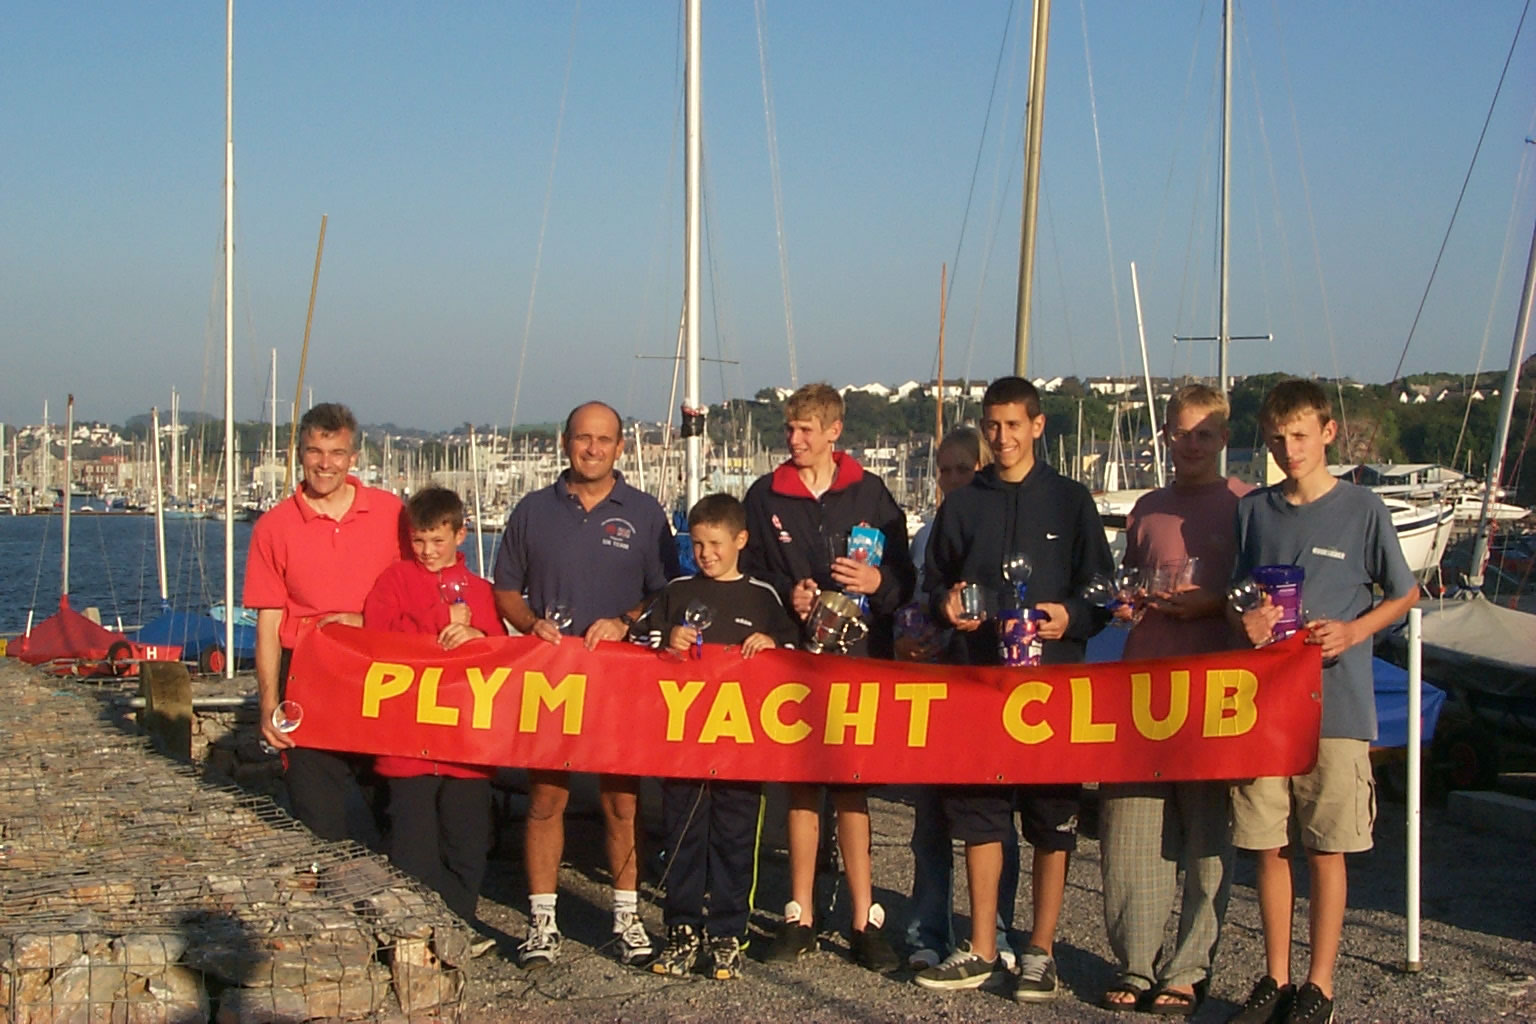 Prizewinning helms and crews behind a red banner with yellow lettering saying 'Plym Yacht Club'